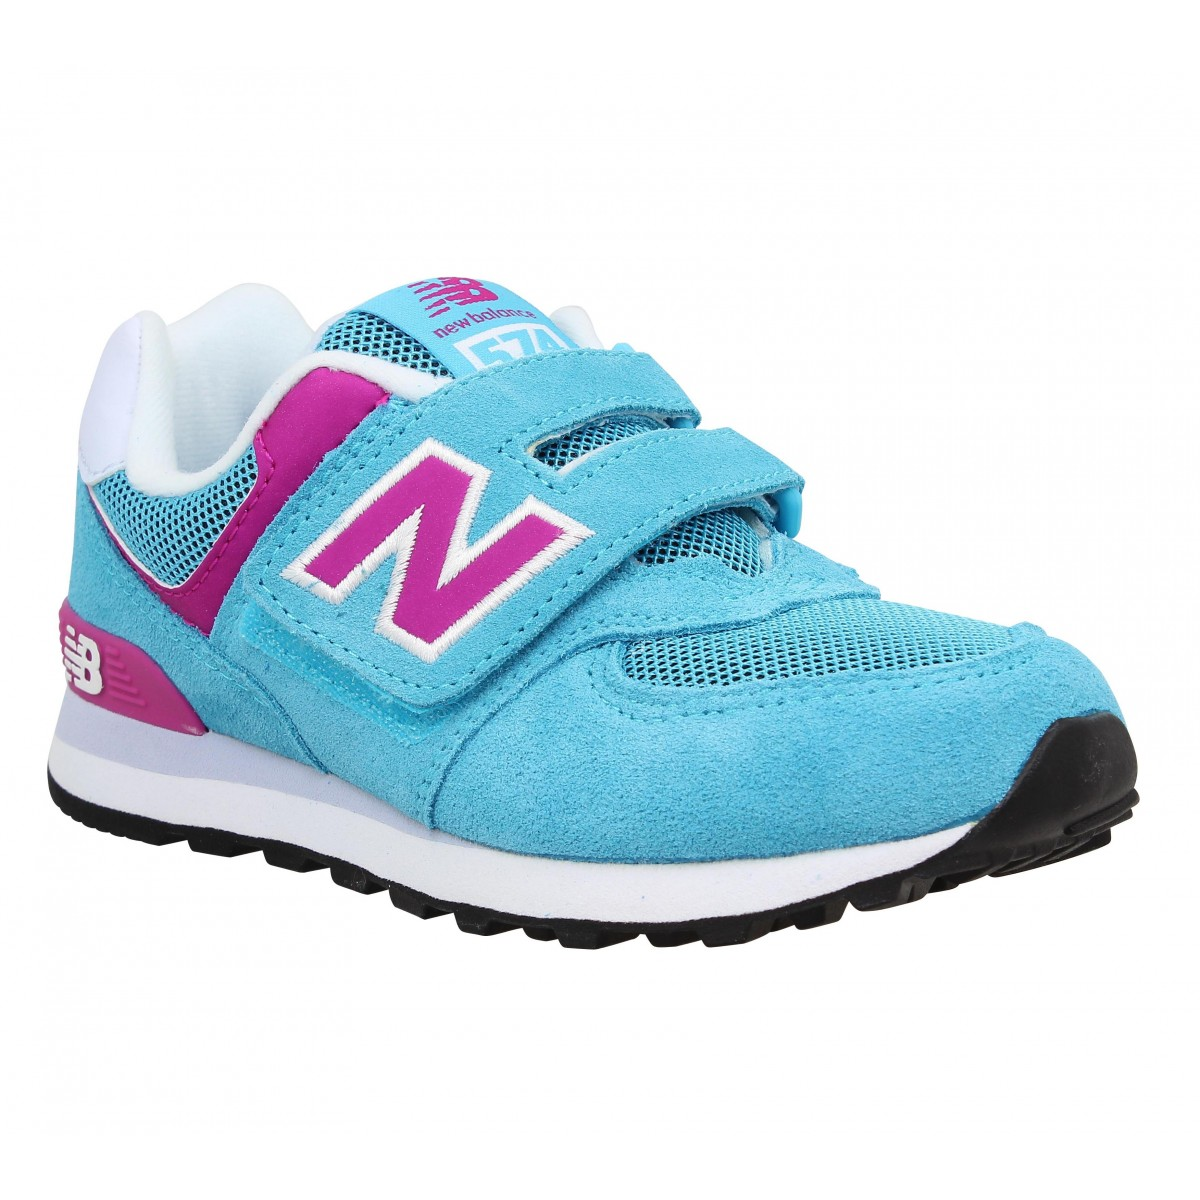 Baskets NEW BALANCE K574 velours + toile Enfant Bleu + Pink